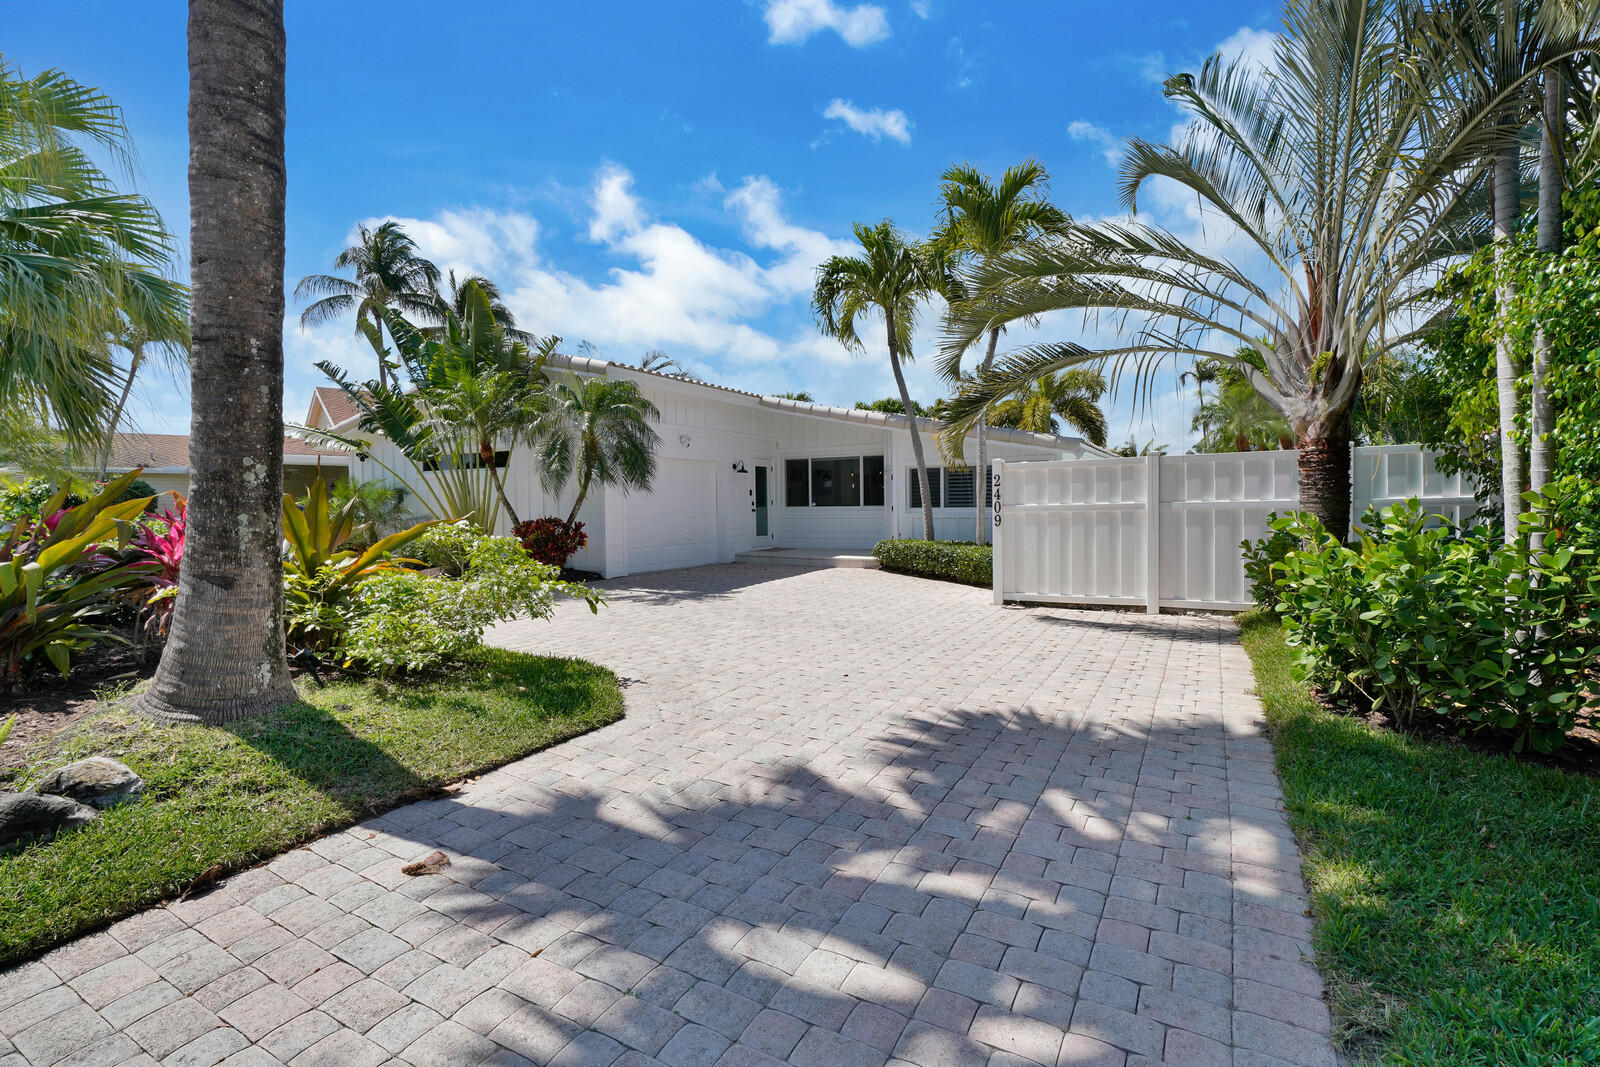 Home for sale in Wilton Manors Wilton Manors Florida